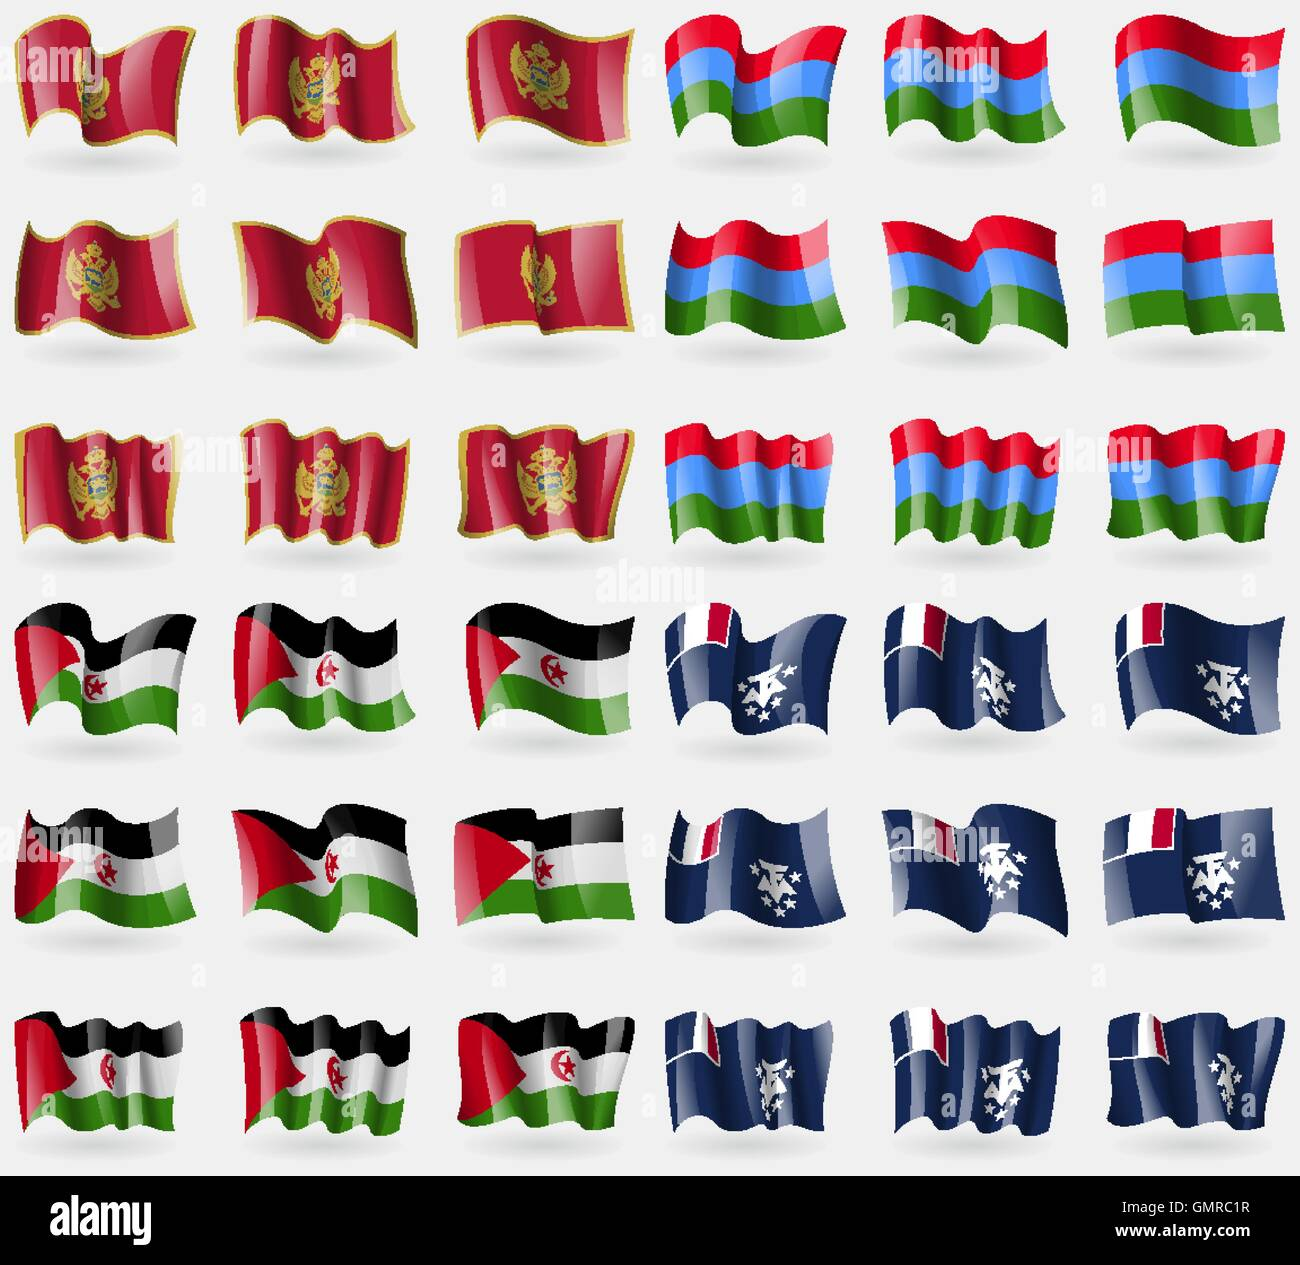 Montenegro, Karelia, Western Sahara, French and Antarctic. Set of 36 flags of the countries of the world. Vector - Stock Image